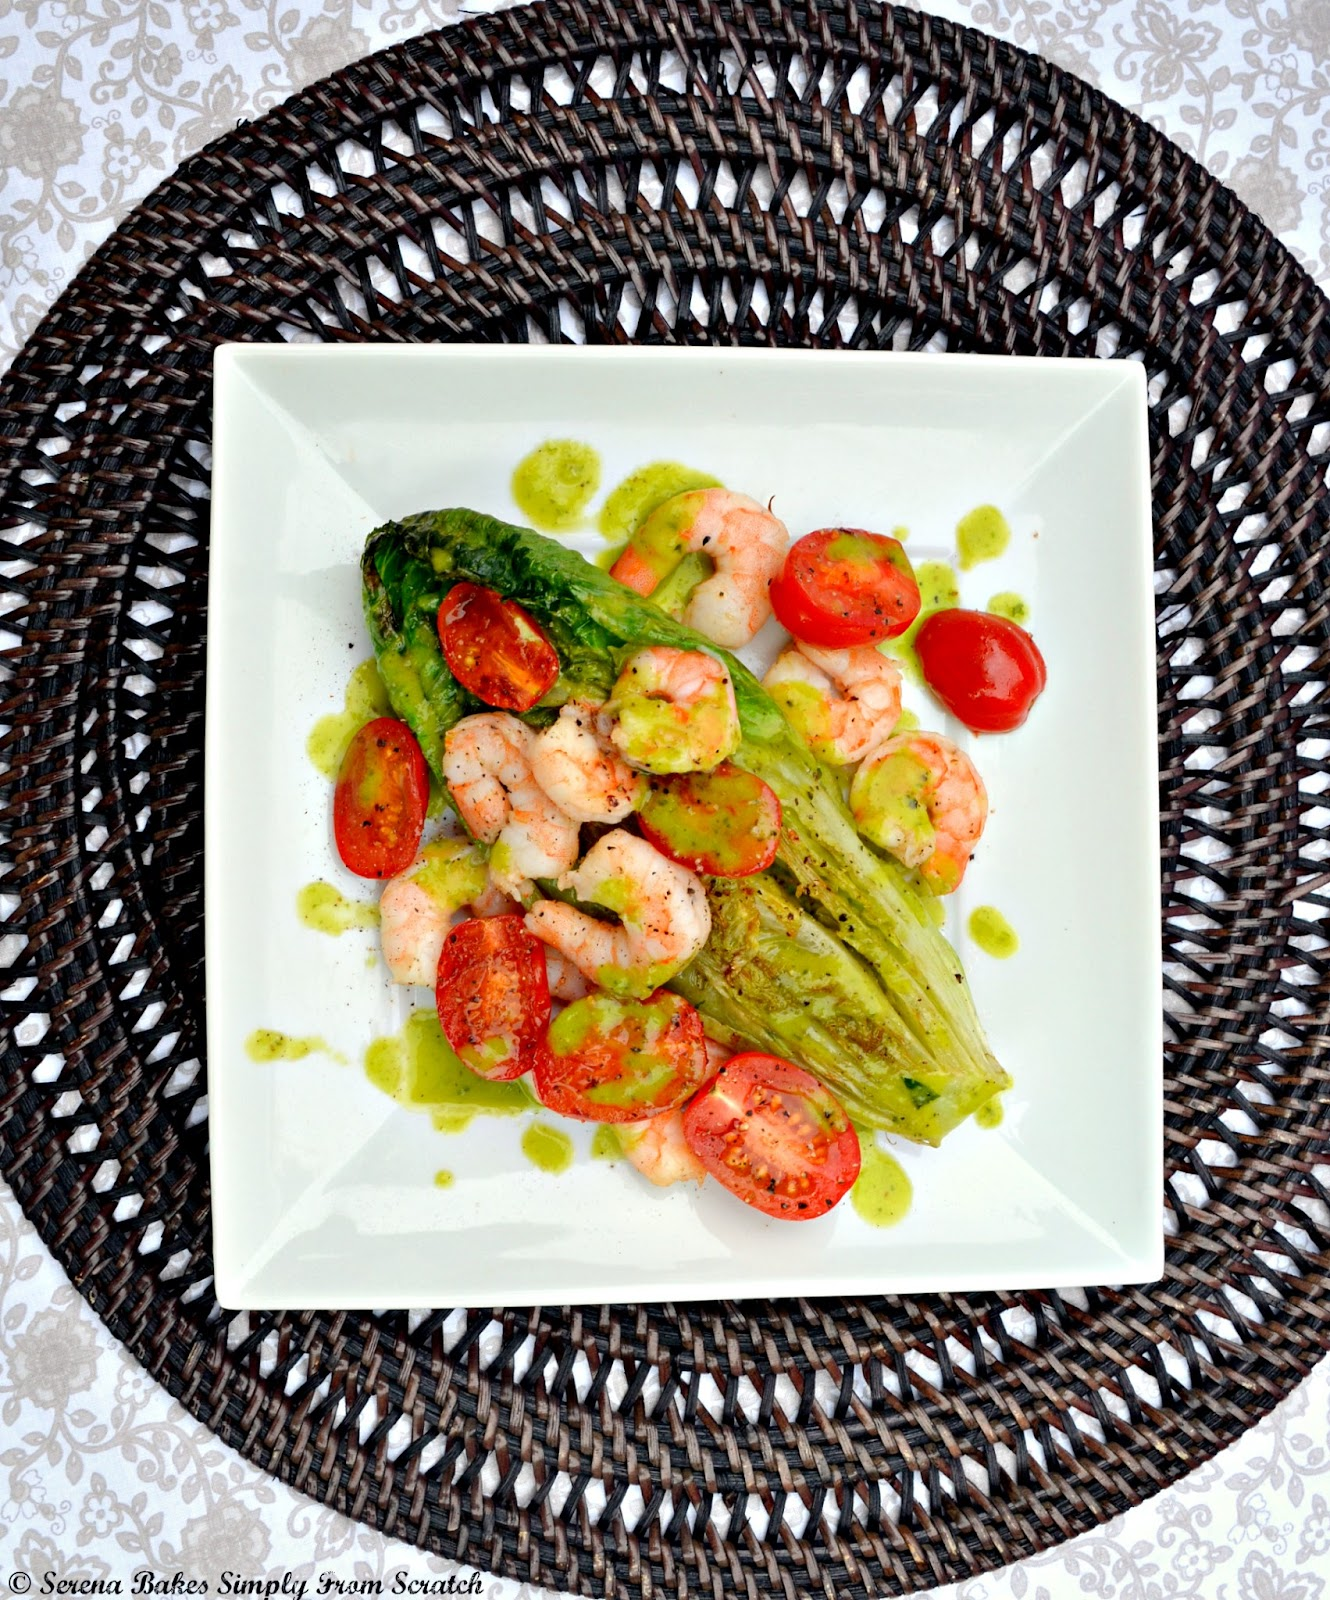 Grilled Romaine Salad with shrimp and a basil vinaigrette made with romaine hearts is a delicious main dish or side warm salad recipe from Serena Bakes Simply From Scratch.